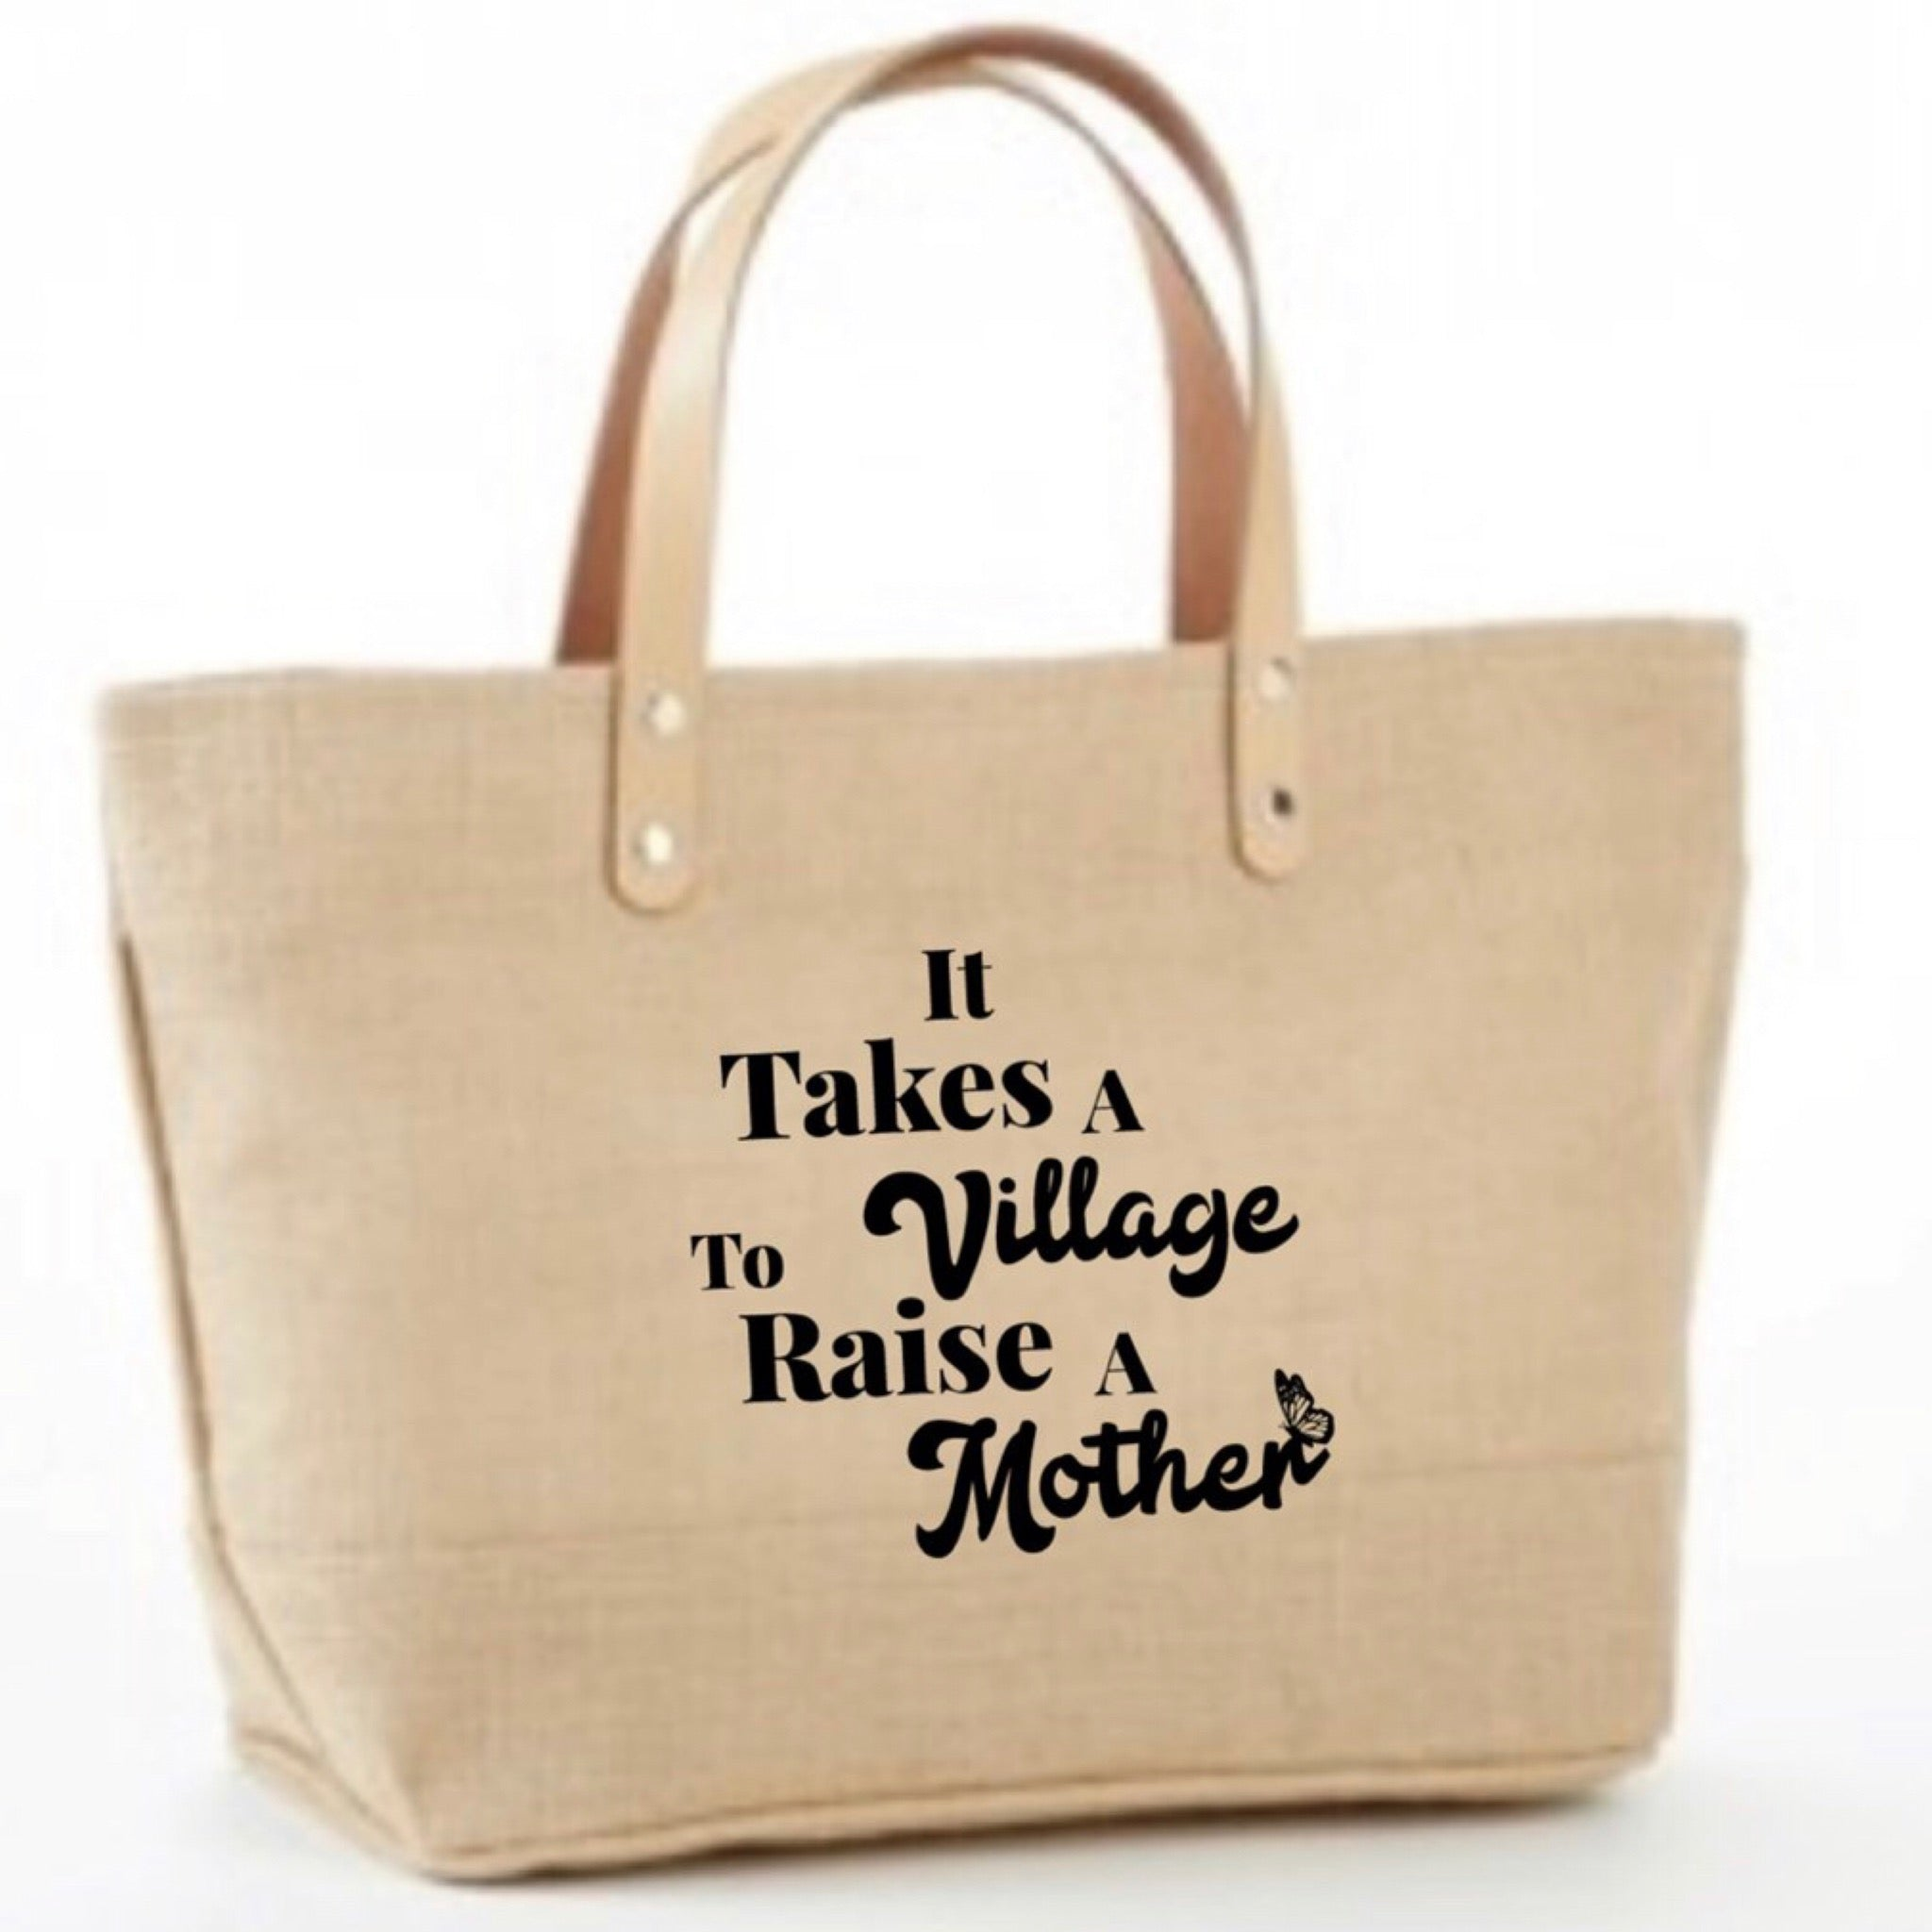 It takes a village to raise a mother | Mom Culture